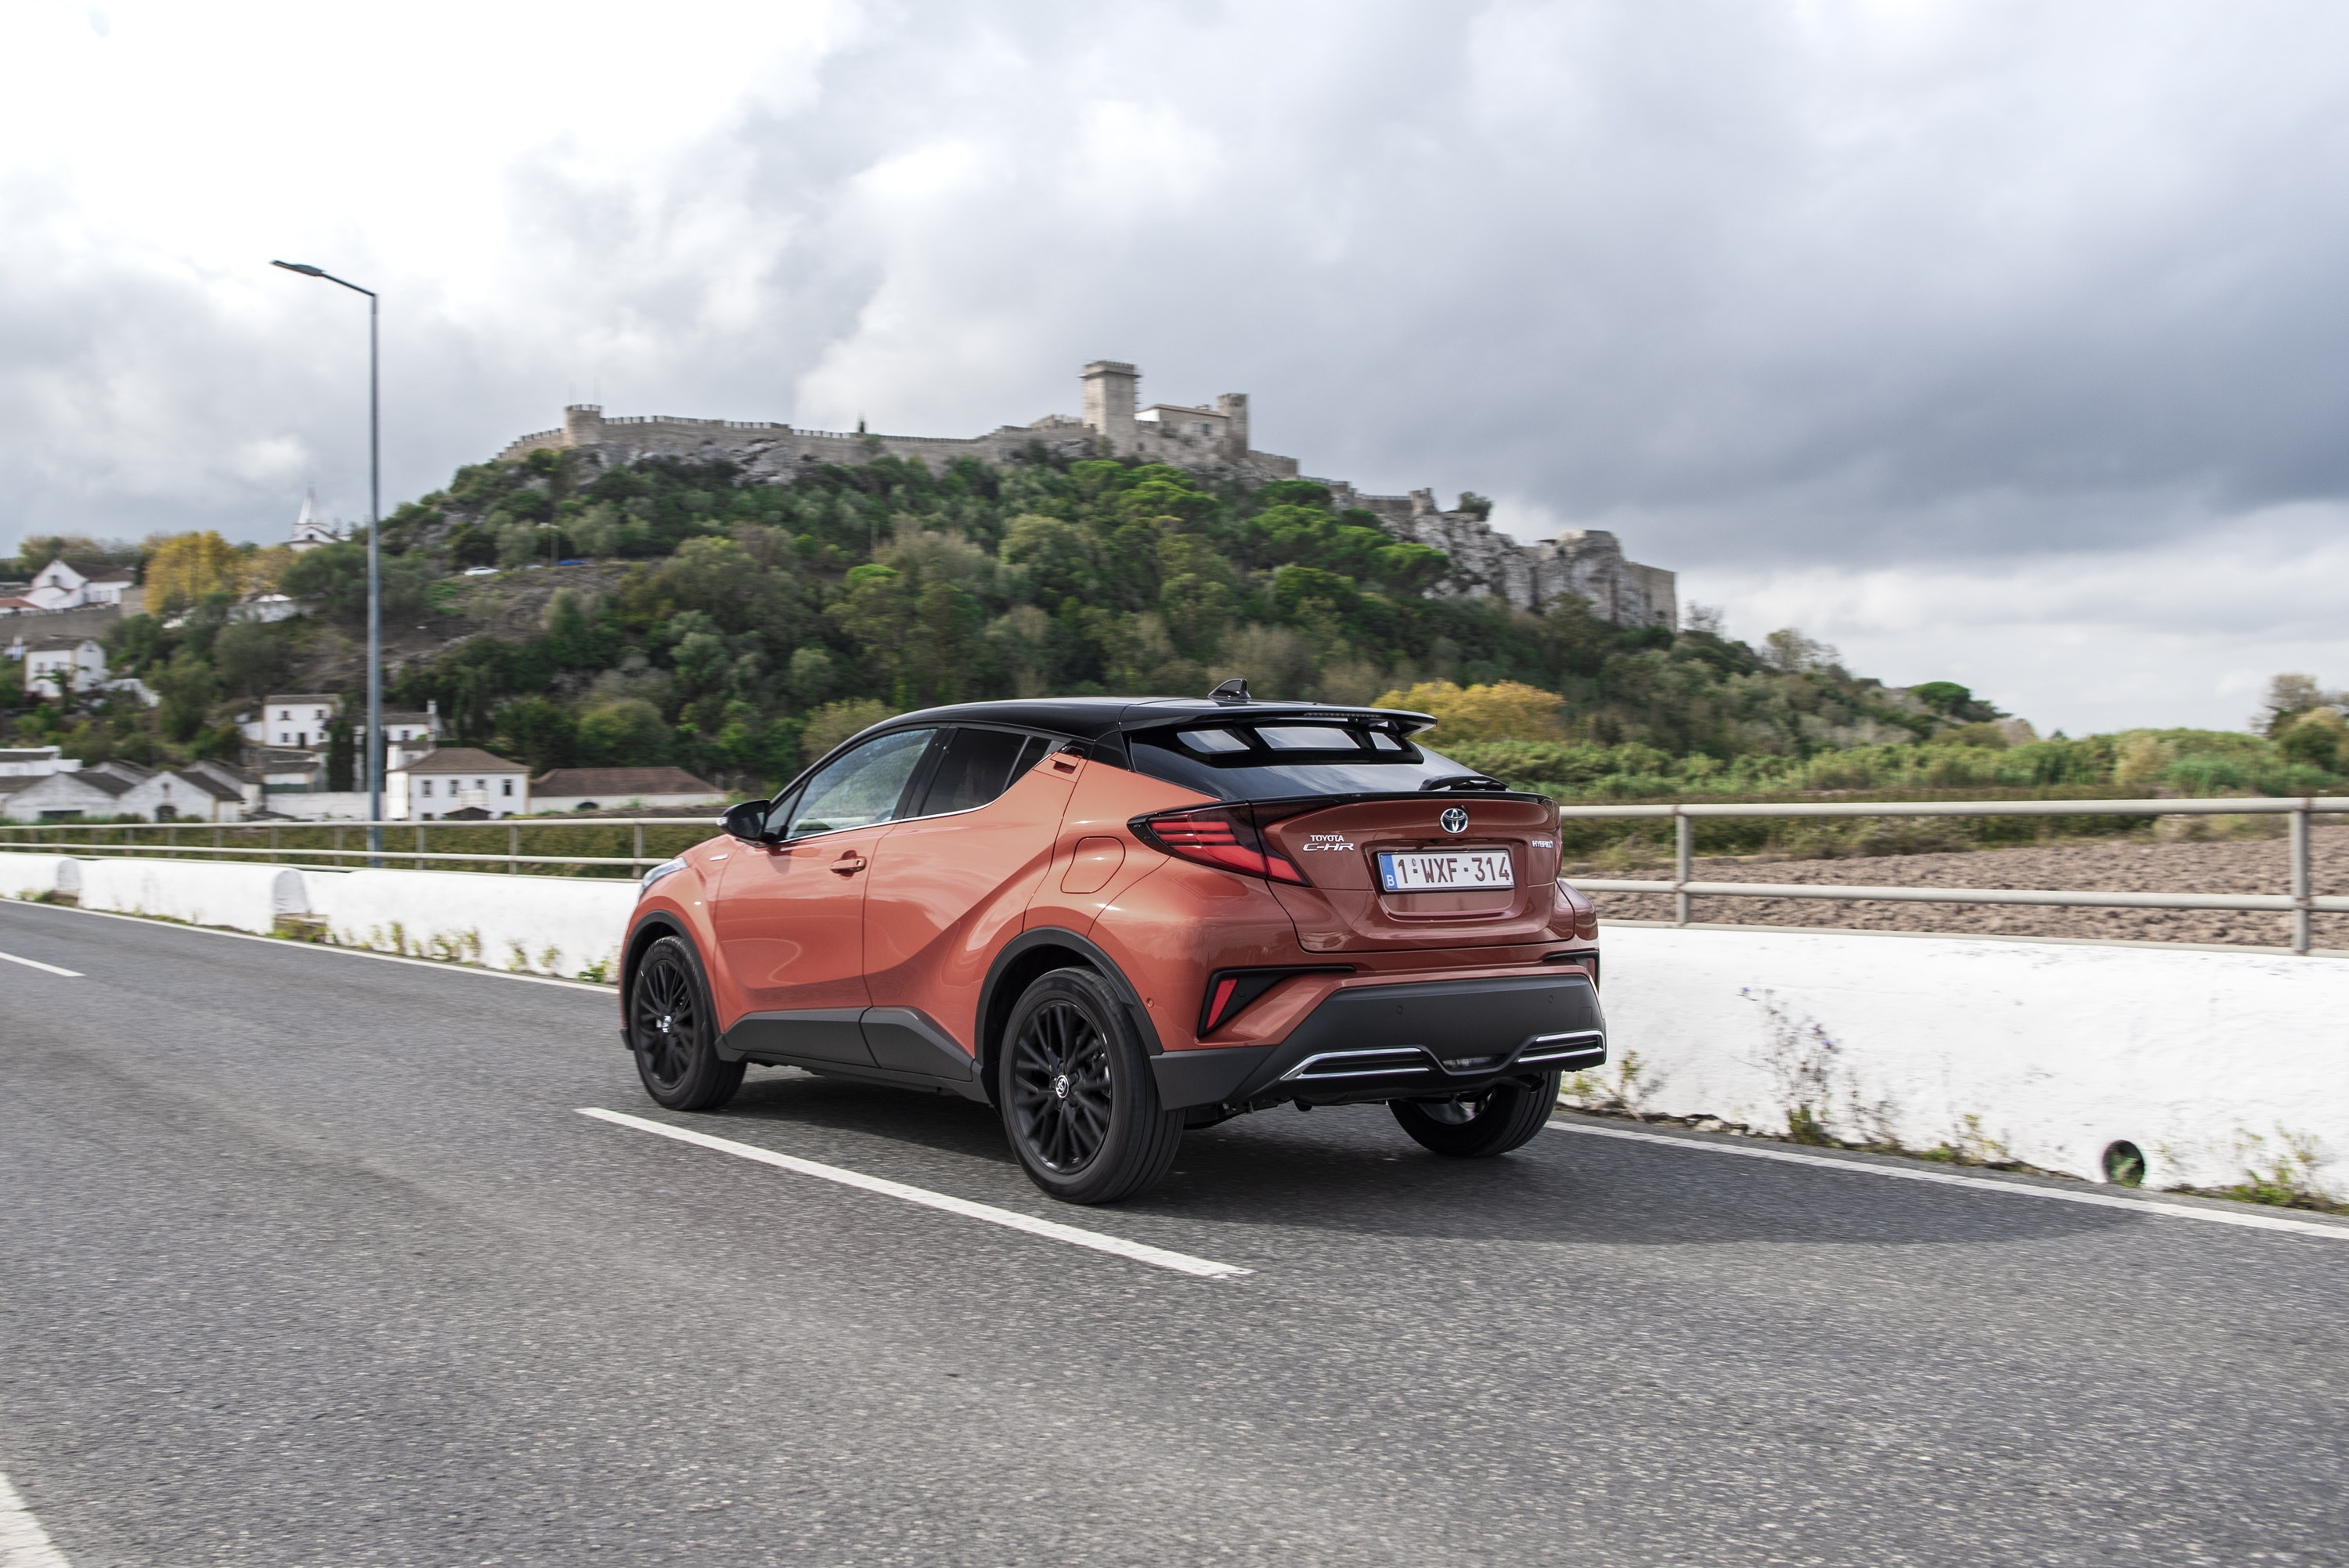 Rear view of a Toyota C-HR driving on a road